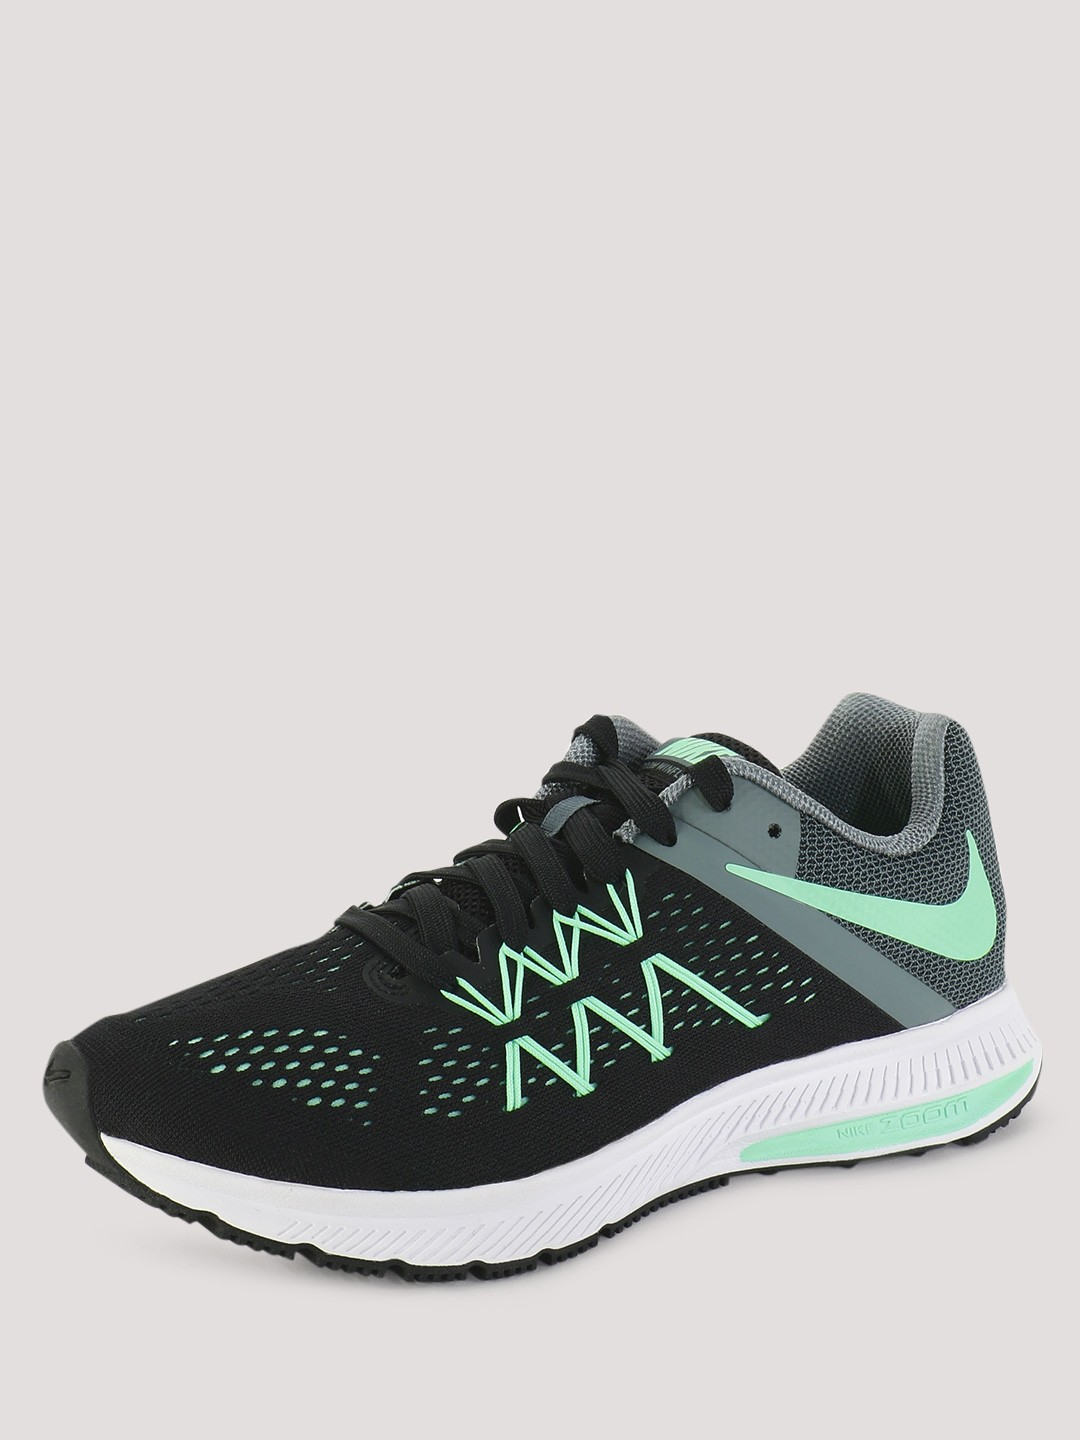 lowest price 9936b f220e Buy Nike Black/Green Women Zoom Winflo 3 Running Shoes for ...